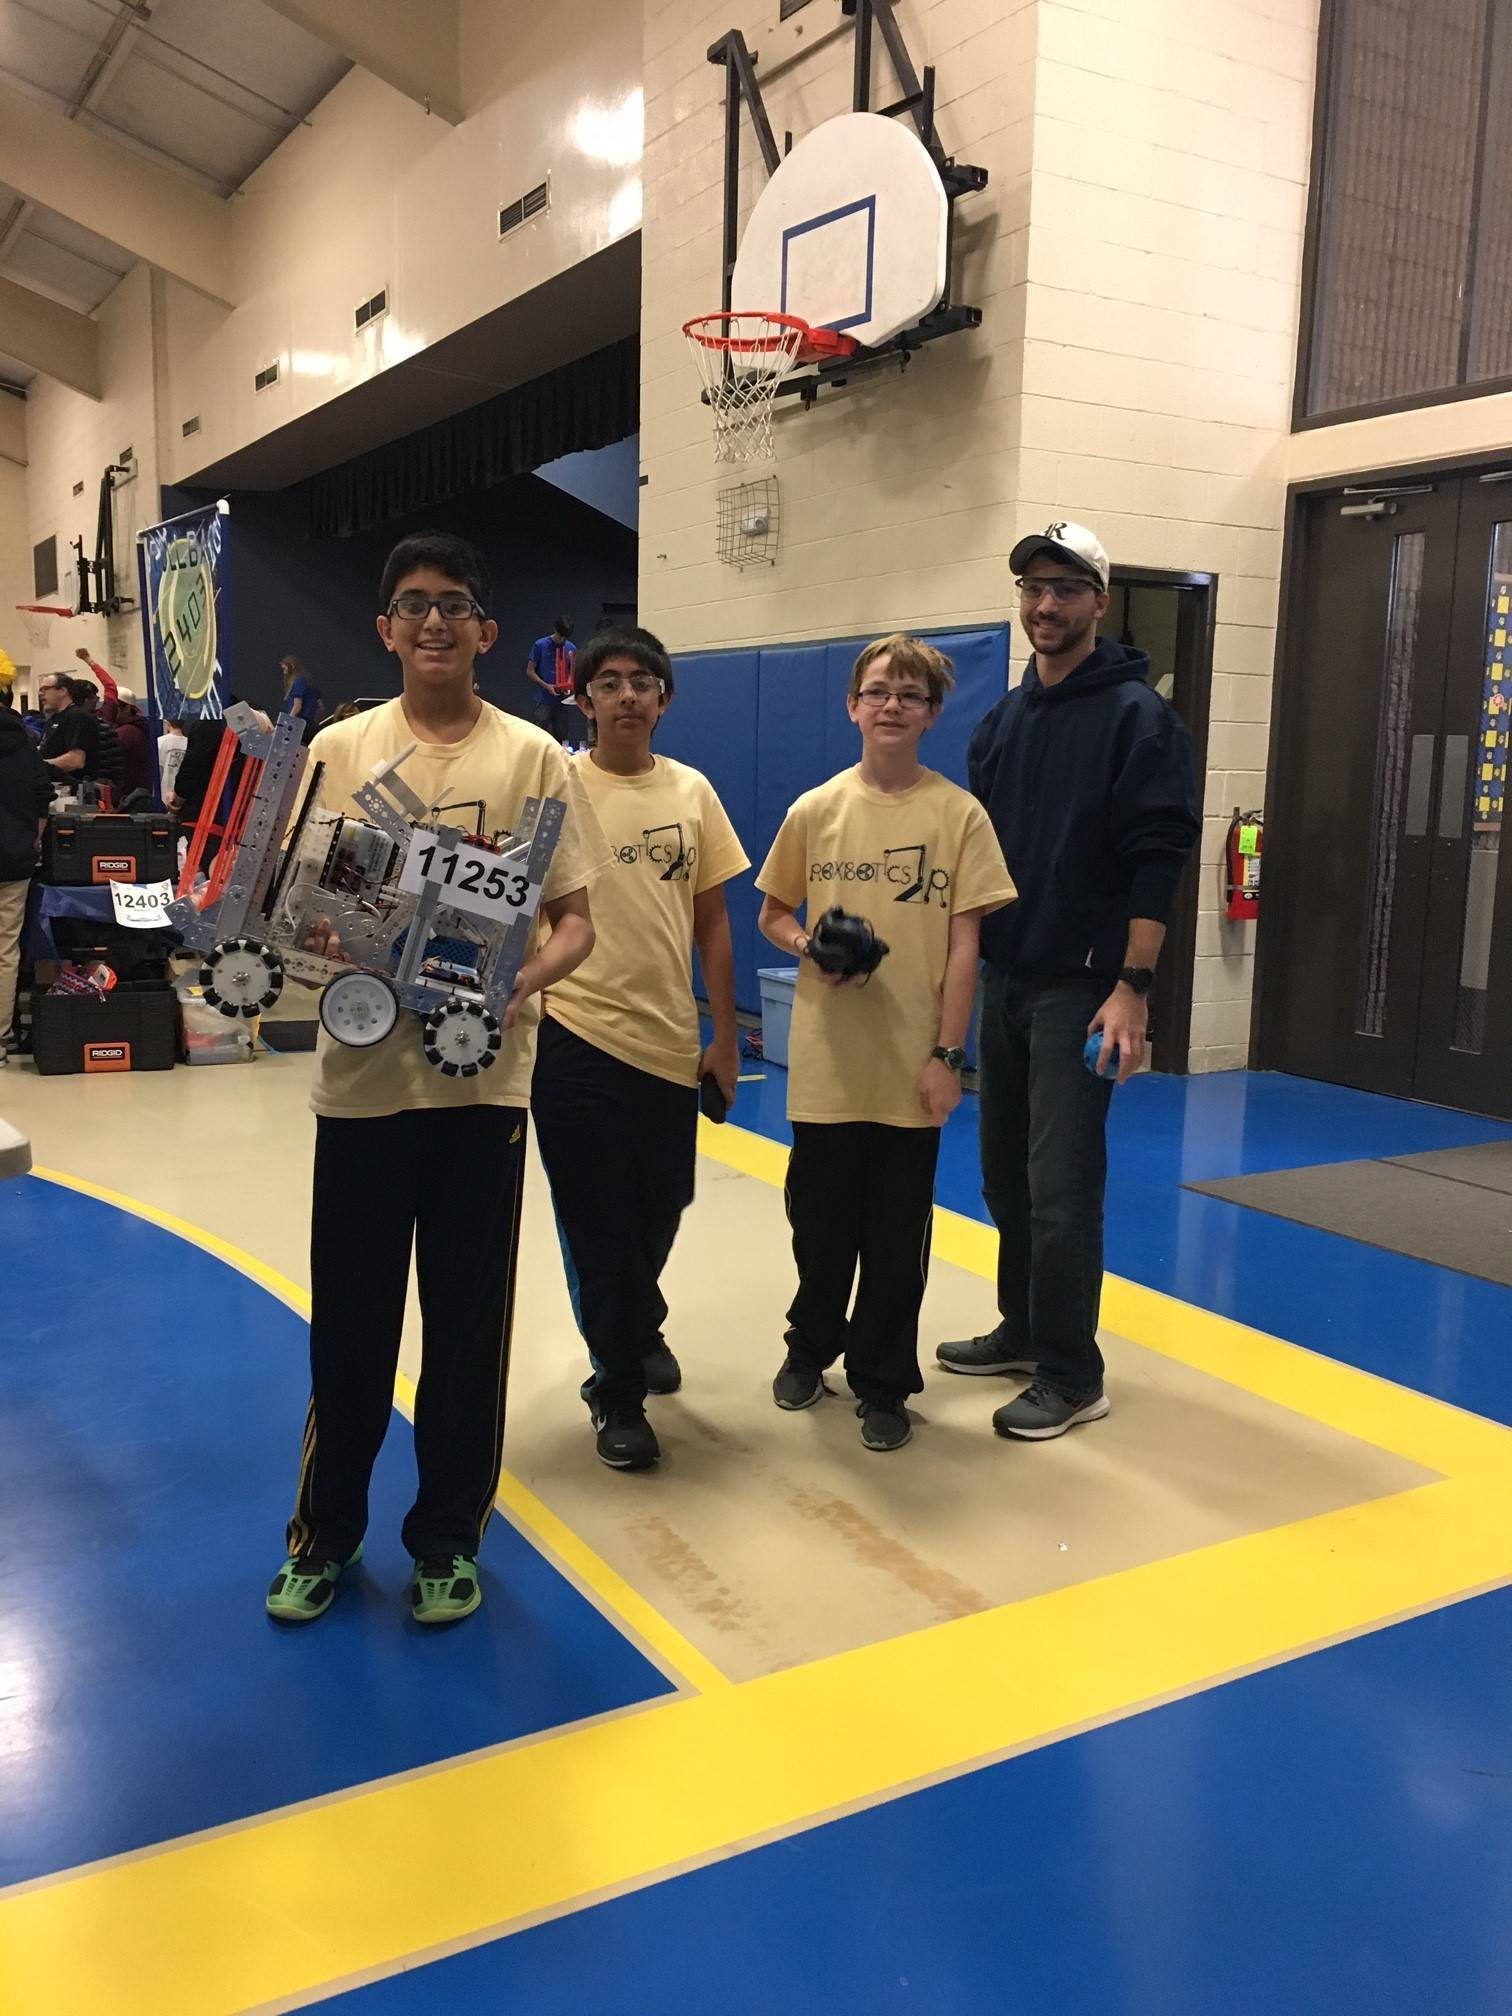 a6e8b0919ee13390e31f_447b0925800e9f6c691b_EMS_Roxbotix_Jr_Team_at_FTC_Competition_10.jpg